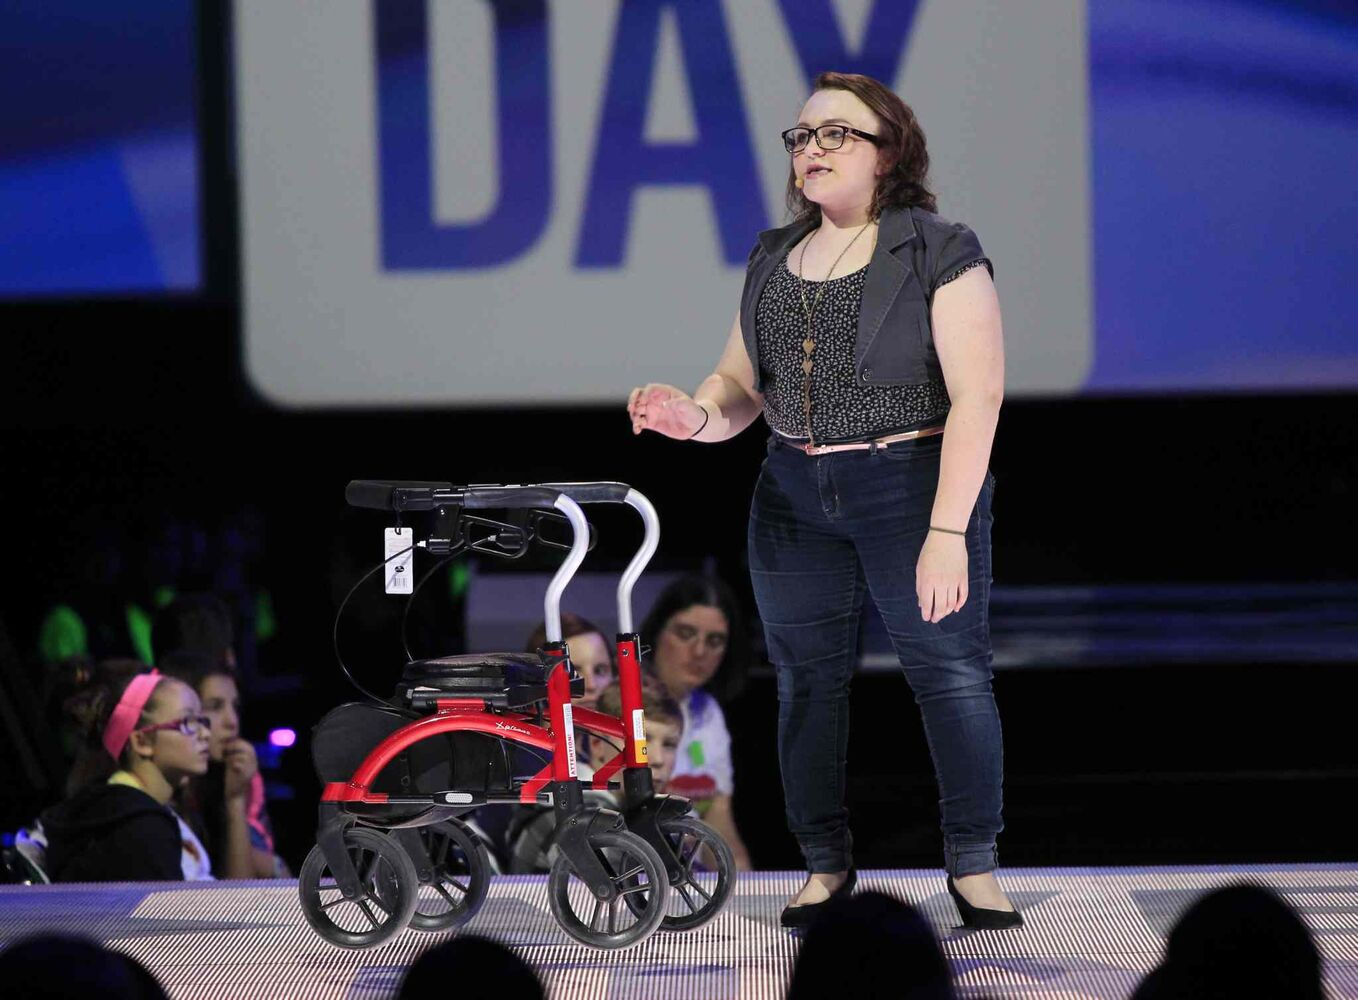 Local student Megan Fultz, a recipient of Canada's Annual Top 20 Under 20 award, speaks at We Day.